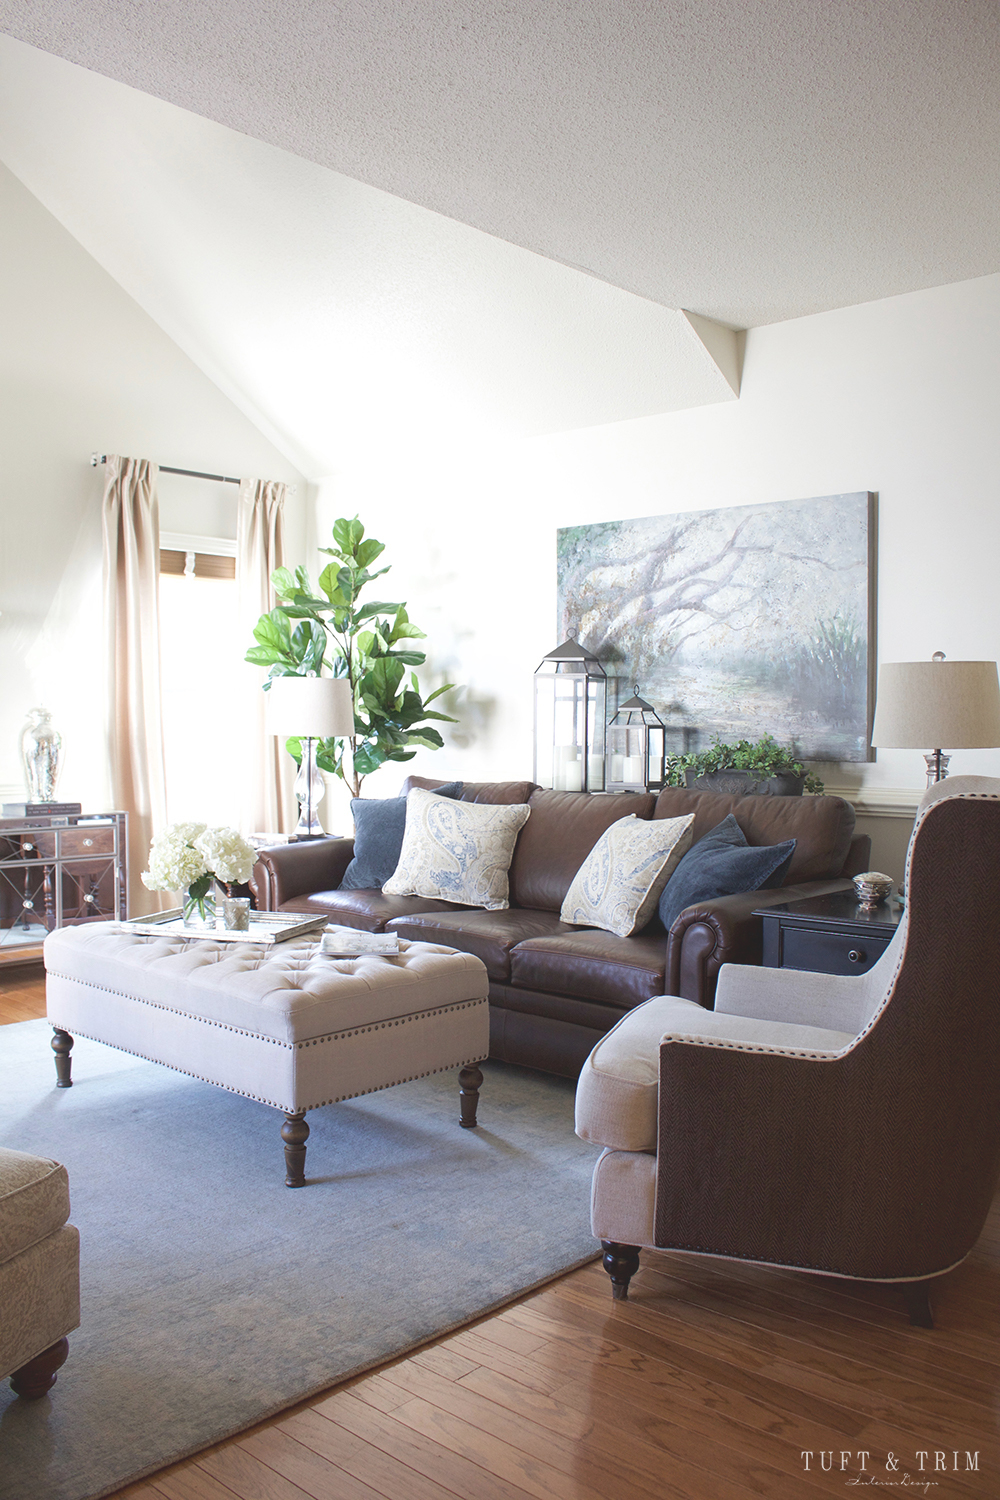 Before and After: A Living Room Transformation - Tuft & Trim